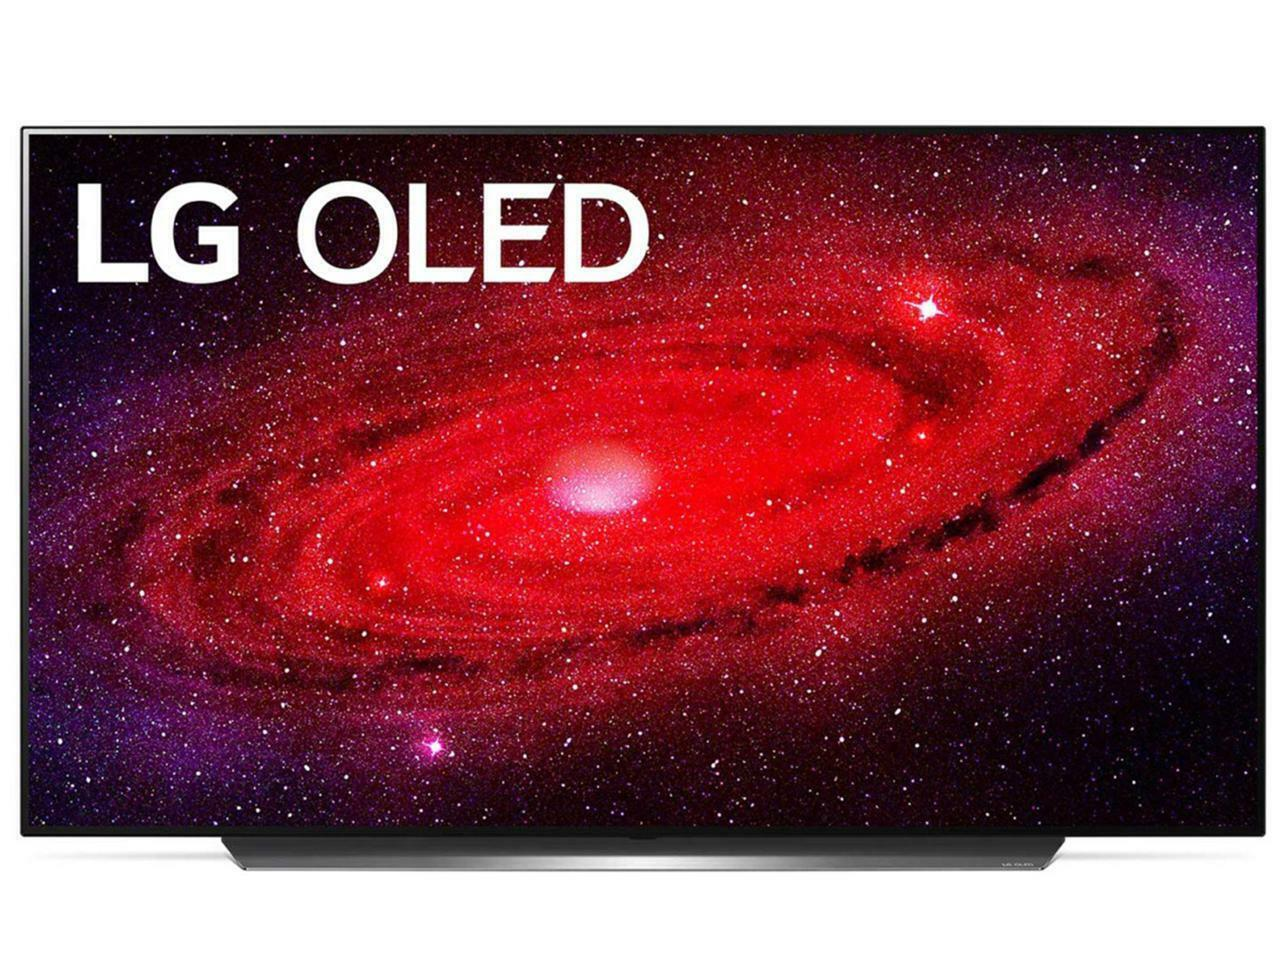 4K OLED Smart TV LG Television CX 65 2160p AI Apple Airplay2 Homekit Bluetooth. Available Now for 3250.00